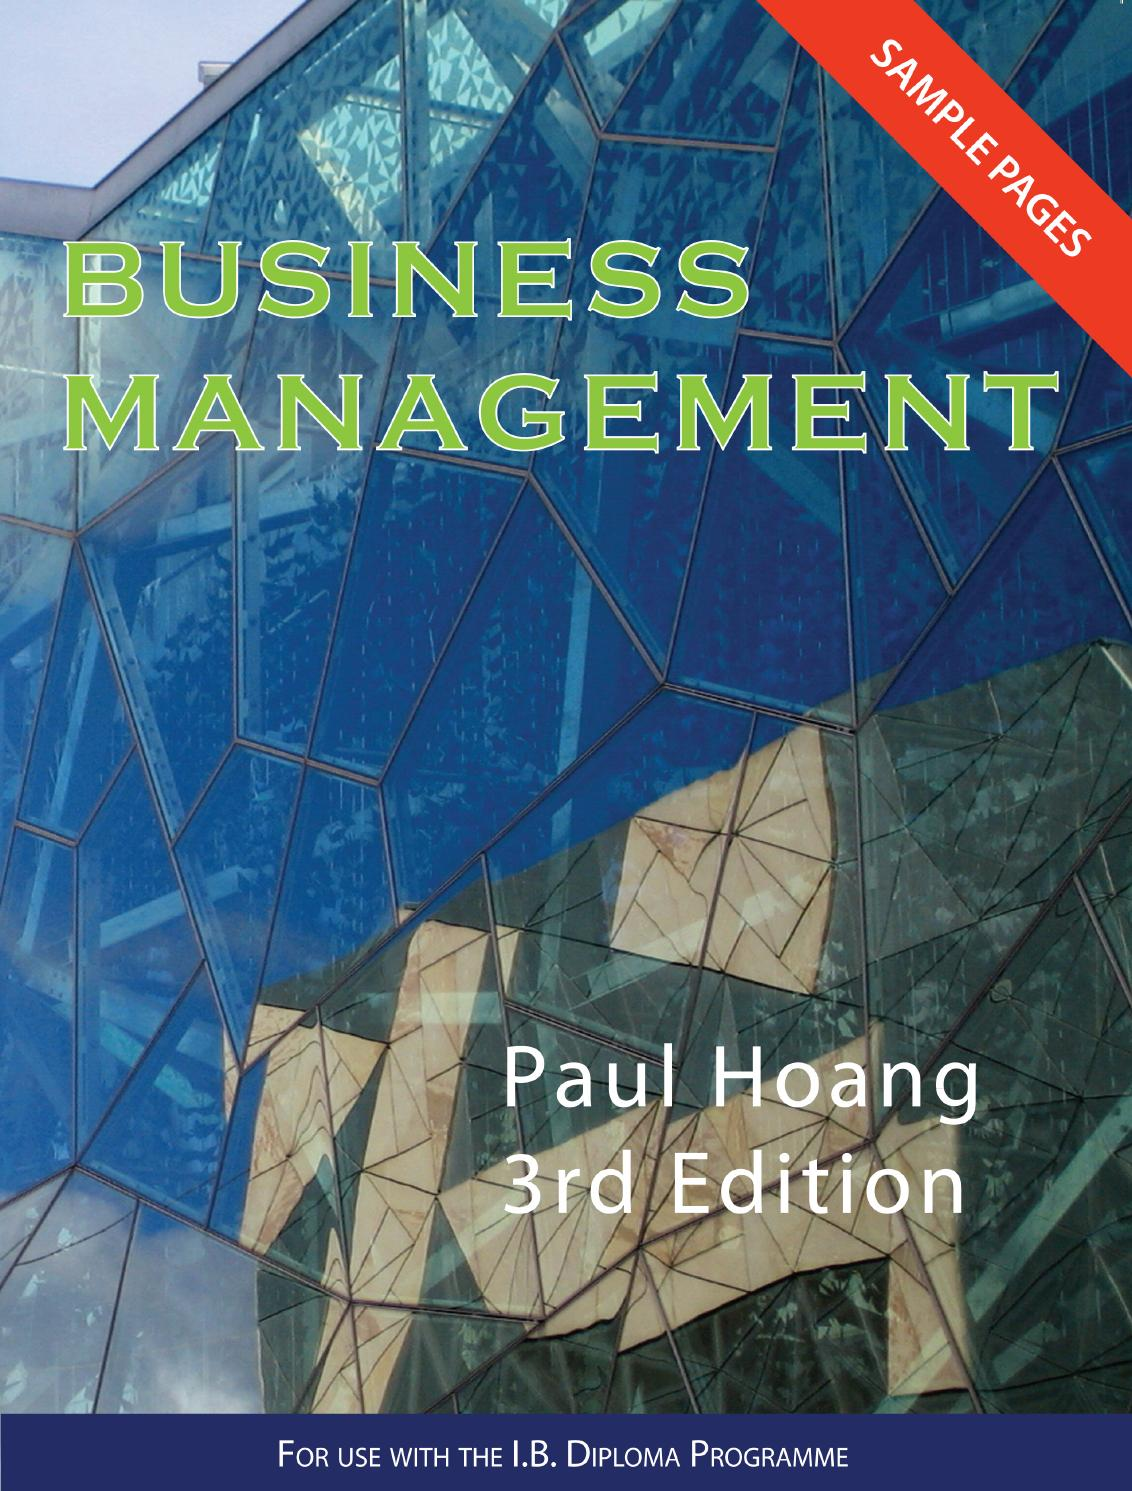 Business management 3rd edition sample isbn 9781921917240 by business management 3rd edition sample isbn 9781921917240 by ibid press issuu fandeluxe Image collections